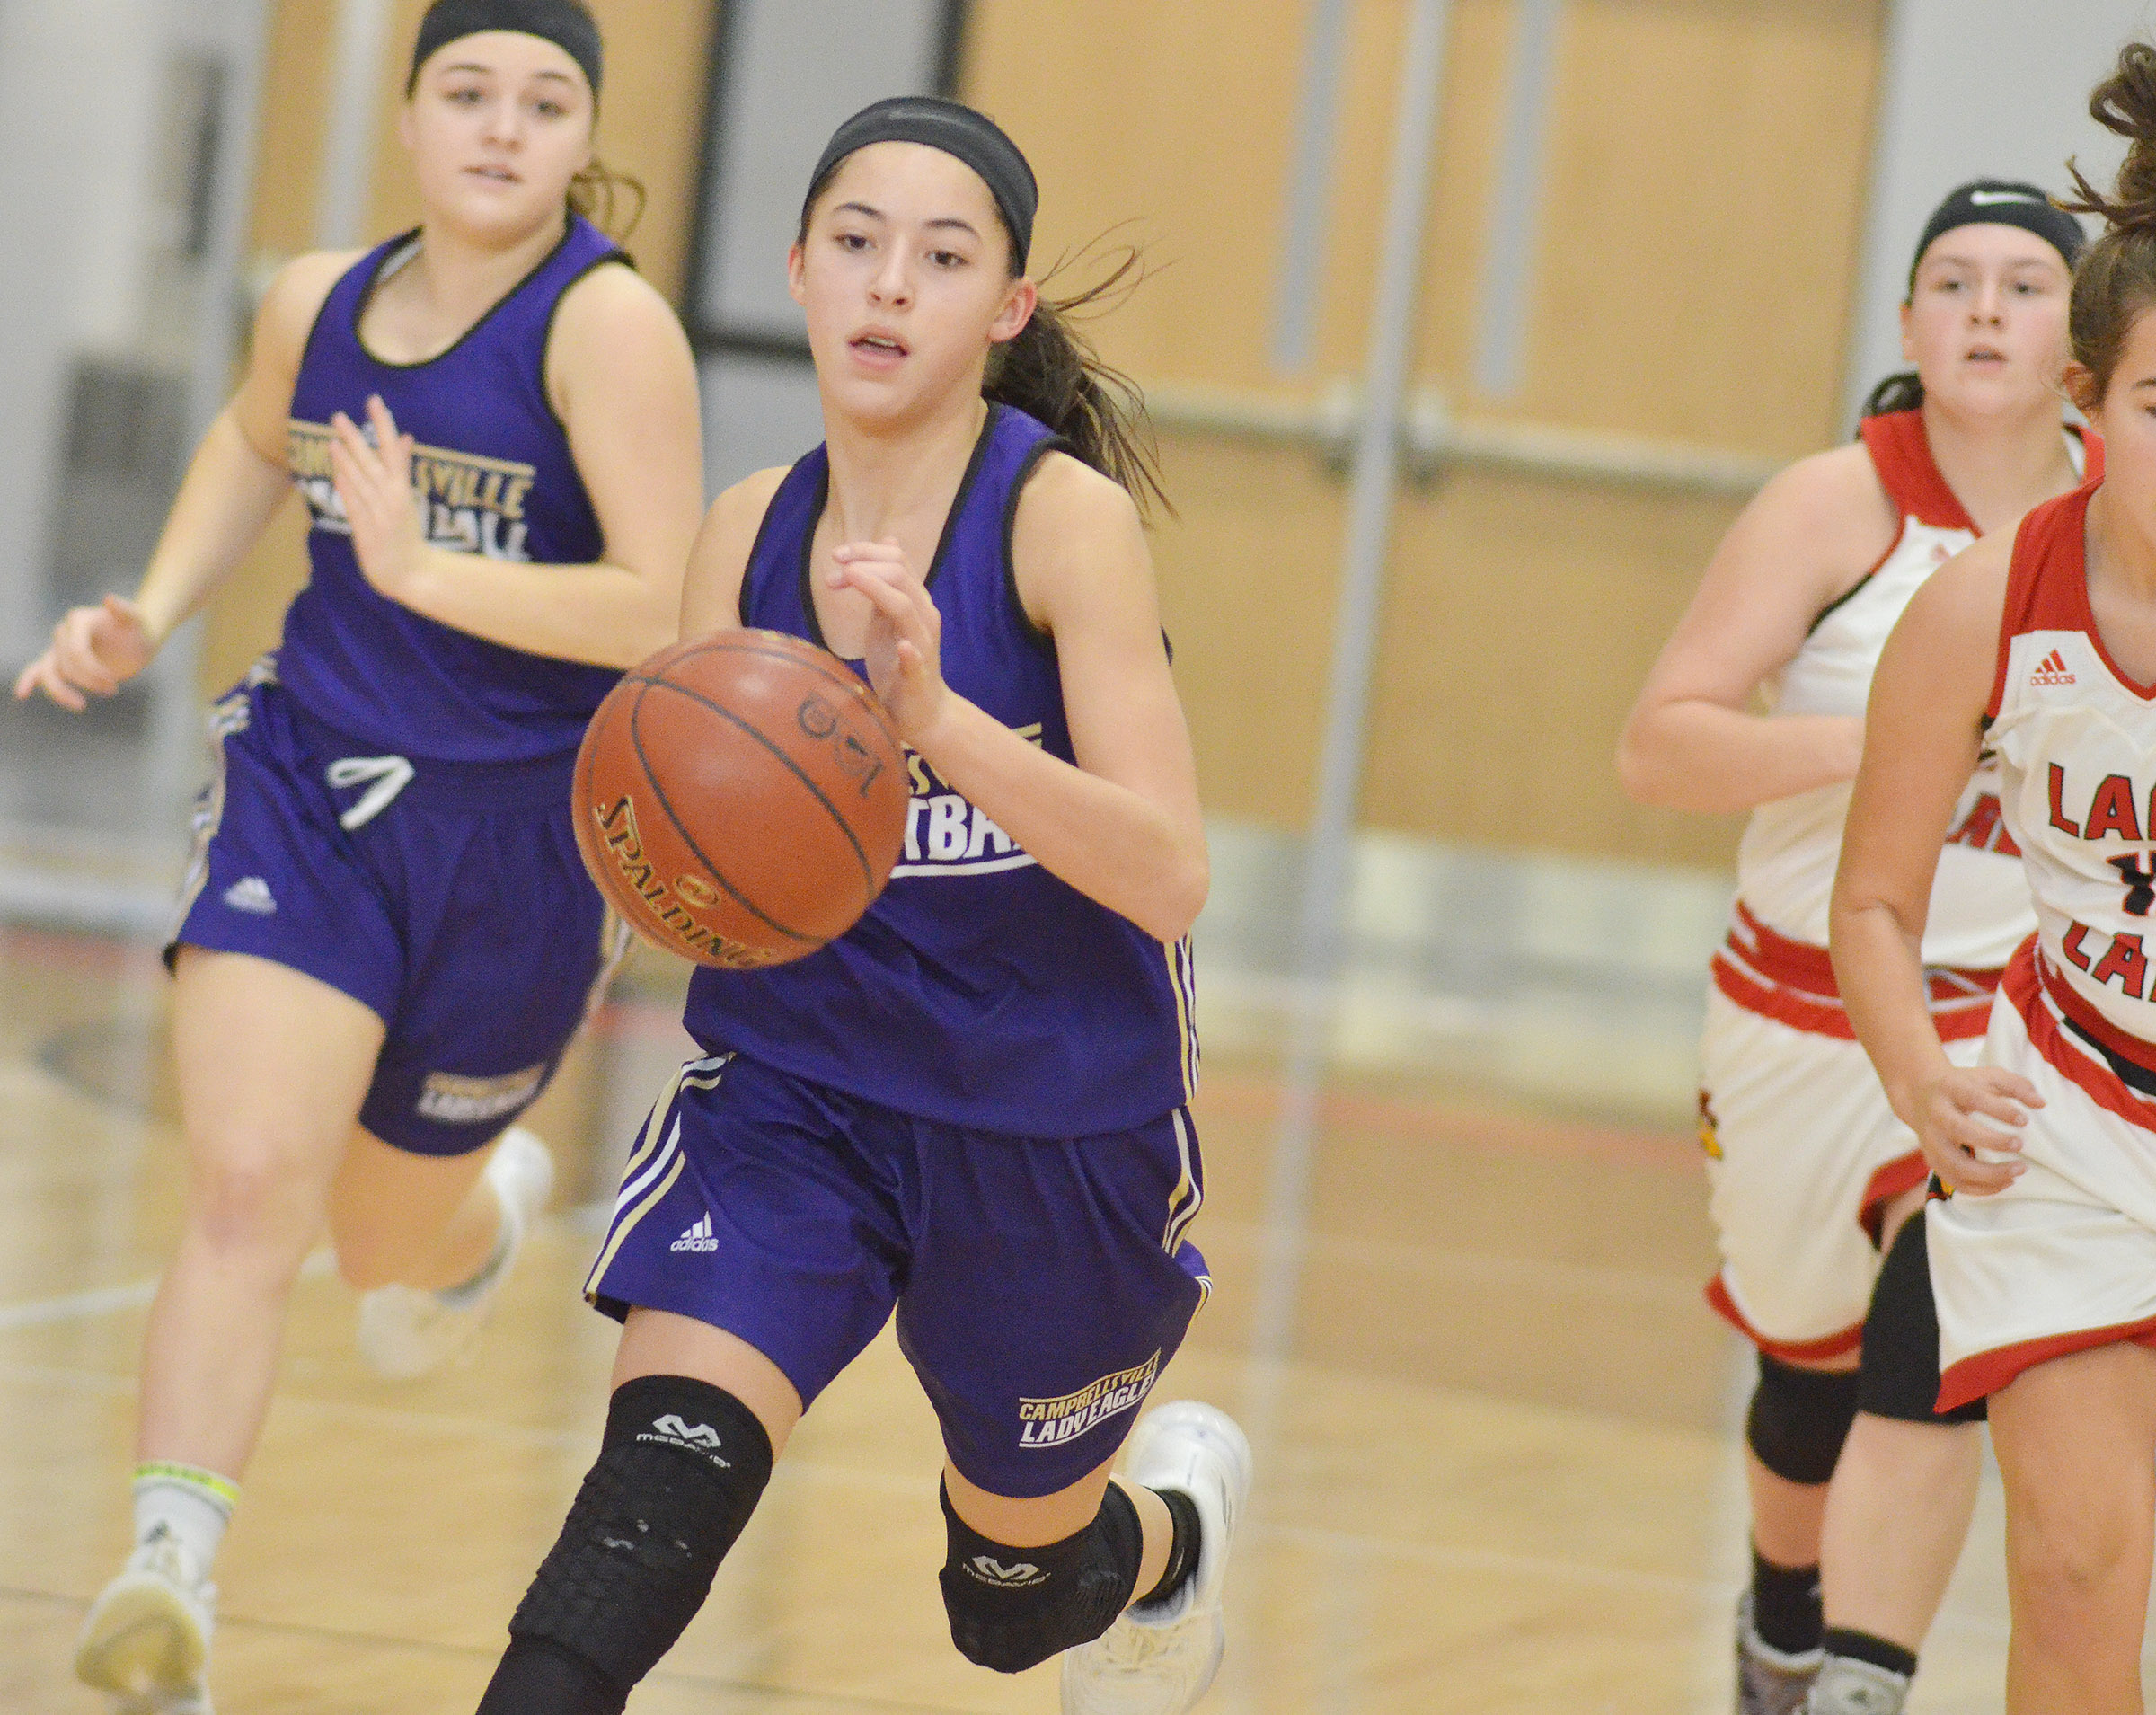 Campbellsville Middle School eighth-grader Kaylyn Smith dribbles to the hoop.